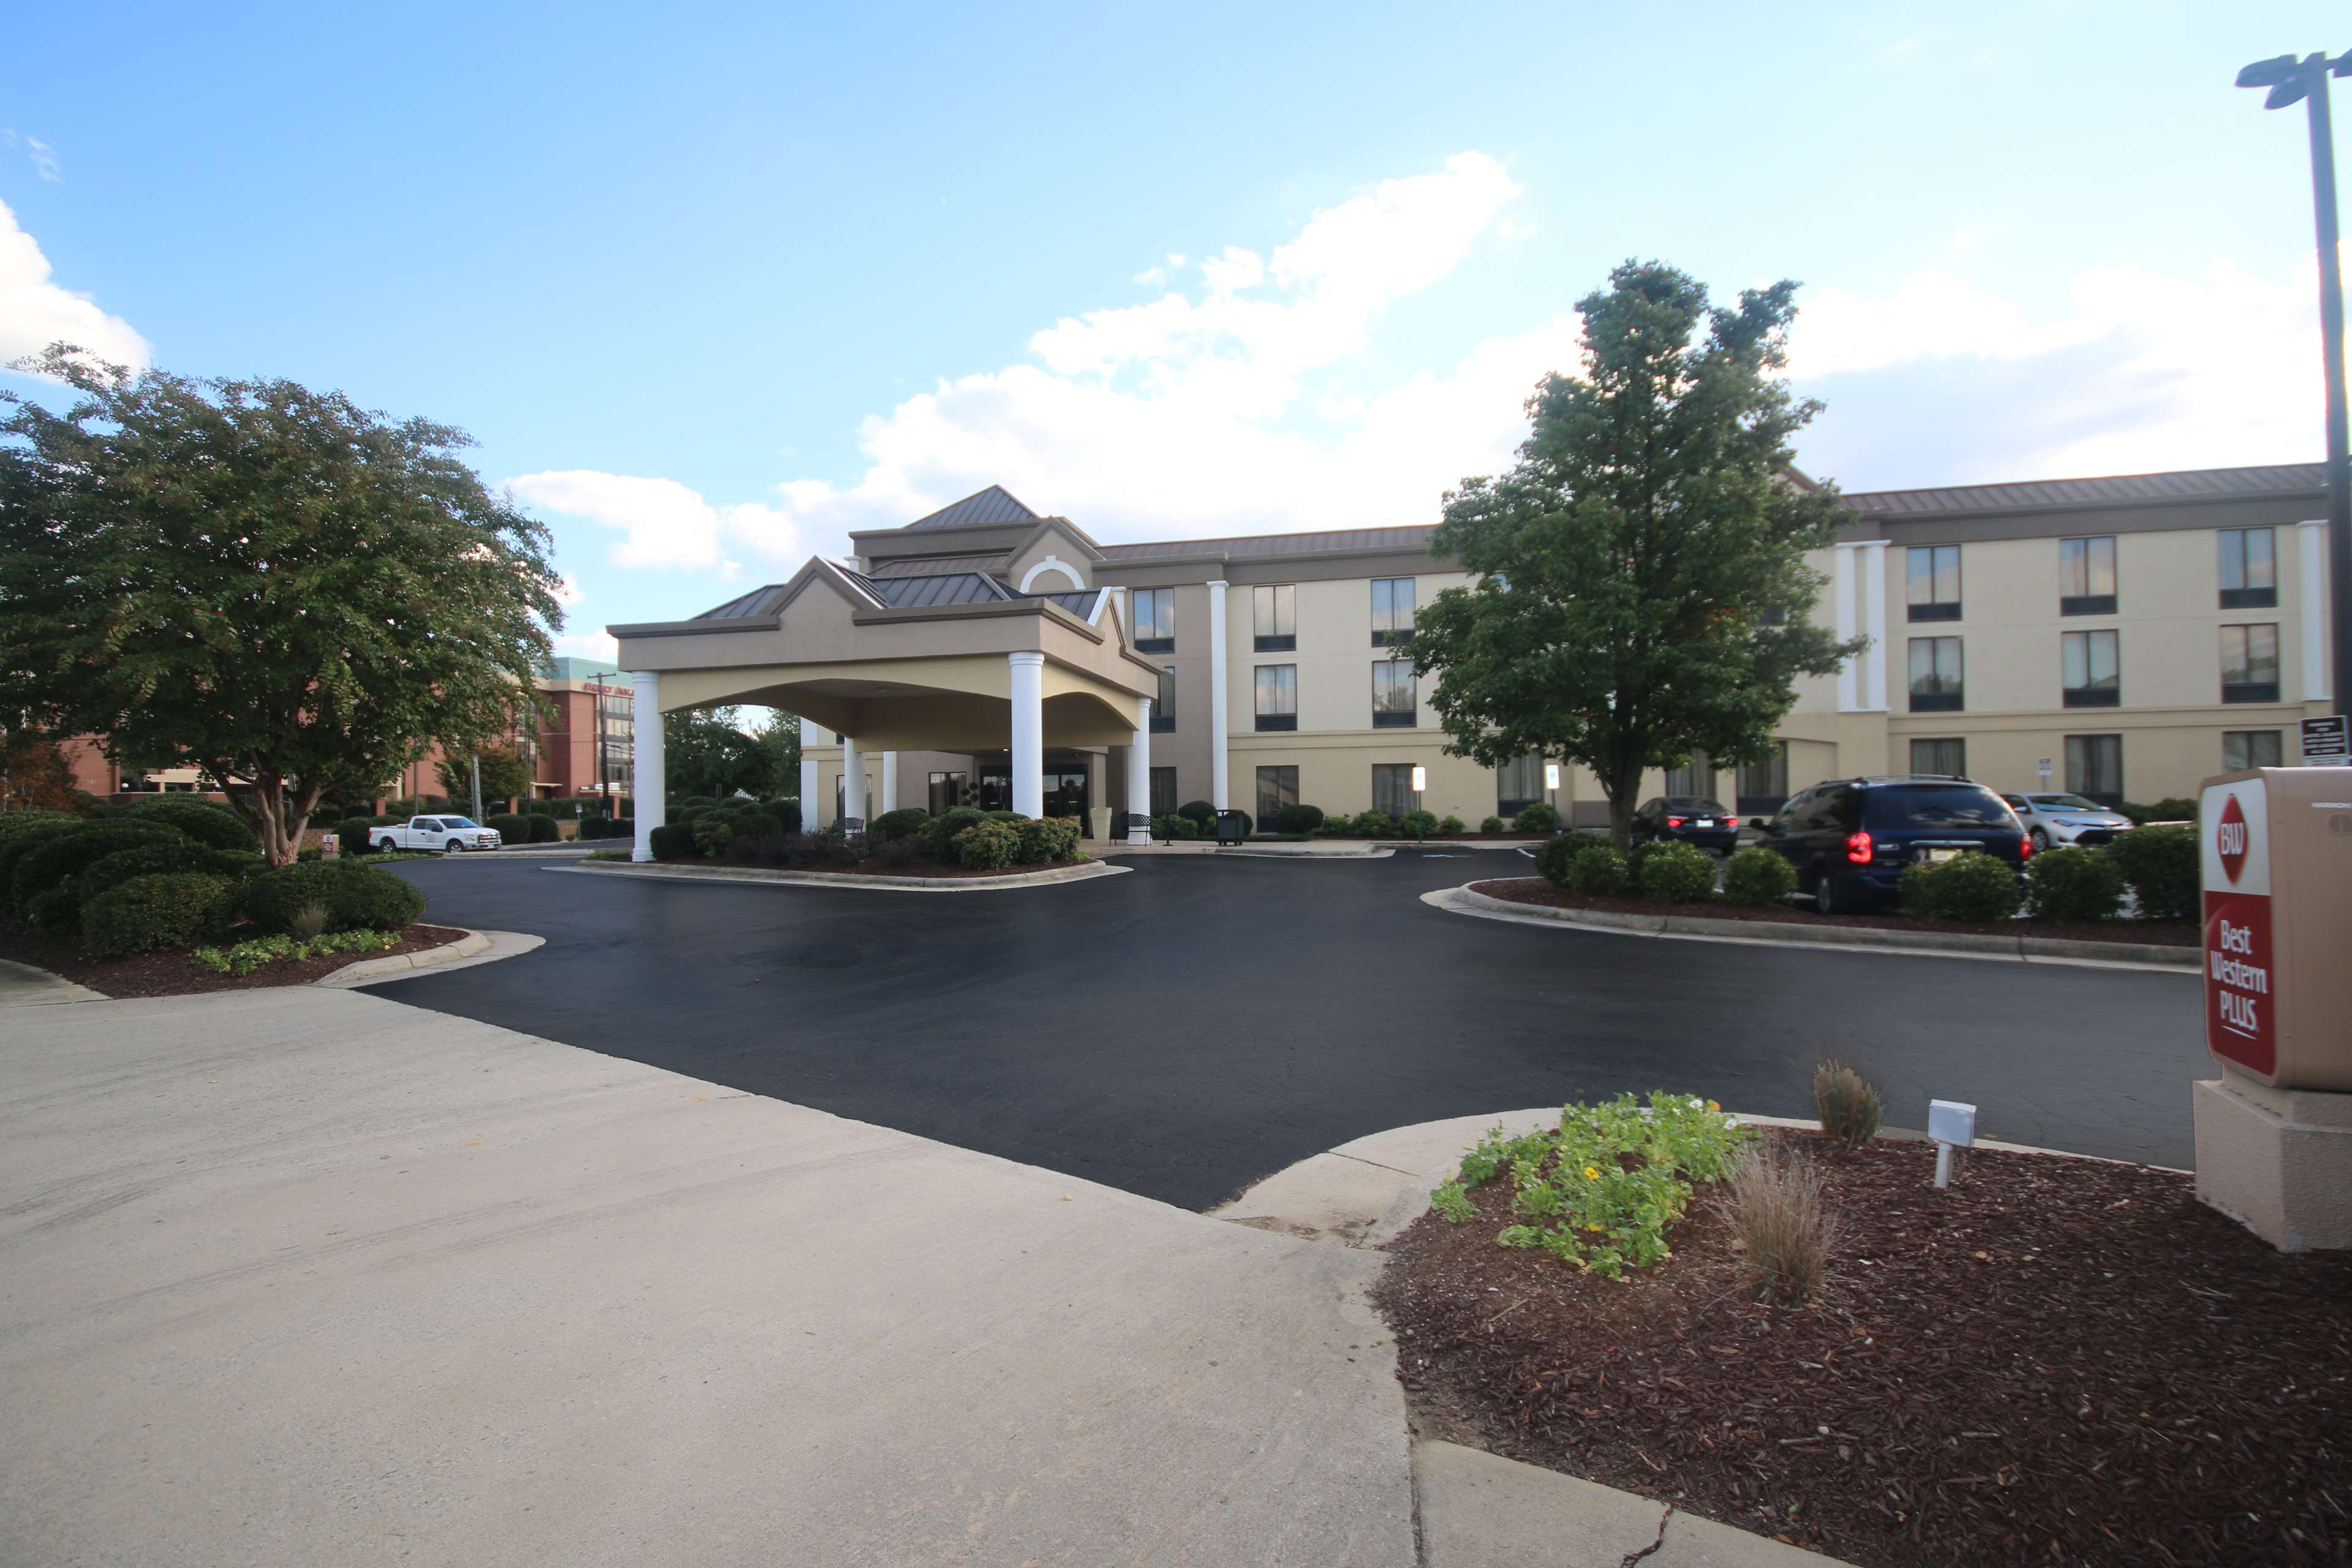 Pet-friendly Best Western Plus Greensboro/Coliseum Area hotel offers FREE Full breakfast, Wi-Fi & parking. Book today and save! free-breakfast free-high-speed-internet accessible-room jetted-tub kitchen-kitchenette non-smoking pet-friendly view.